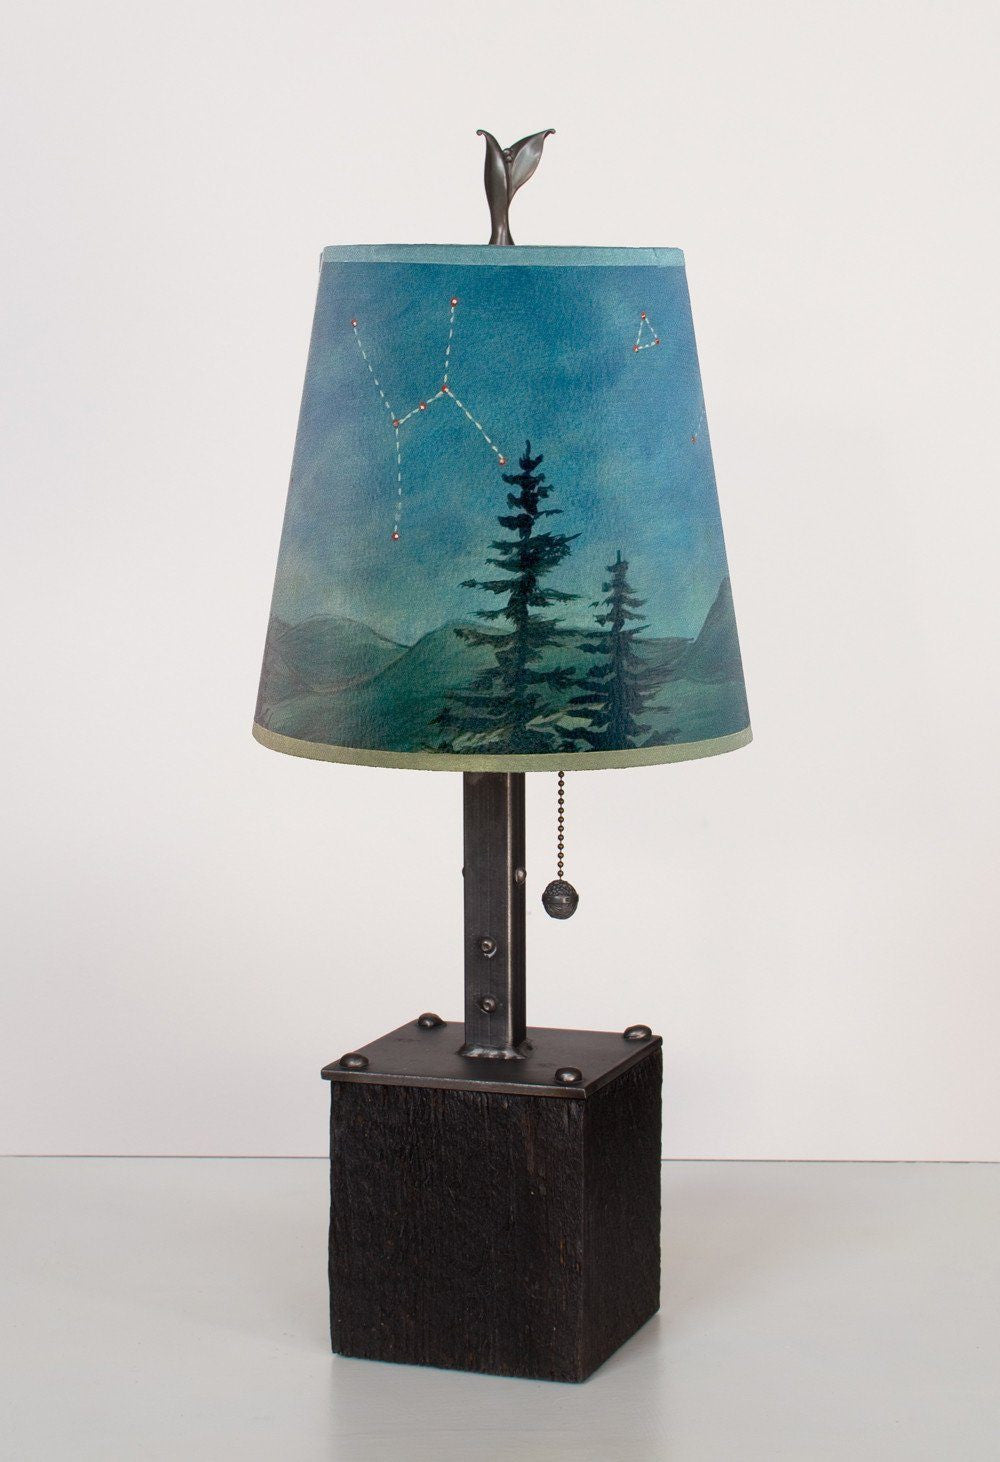 Steel Table Lamp on Reclaimed Wood with Small Drum Shade in Midnight Sky